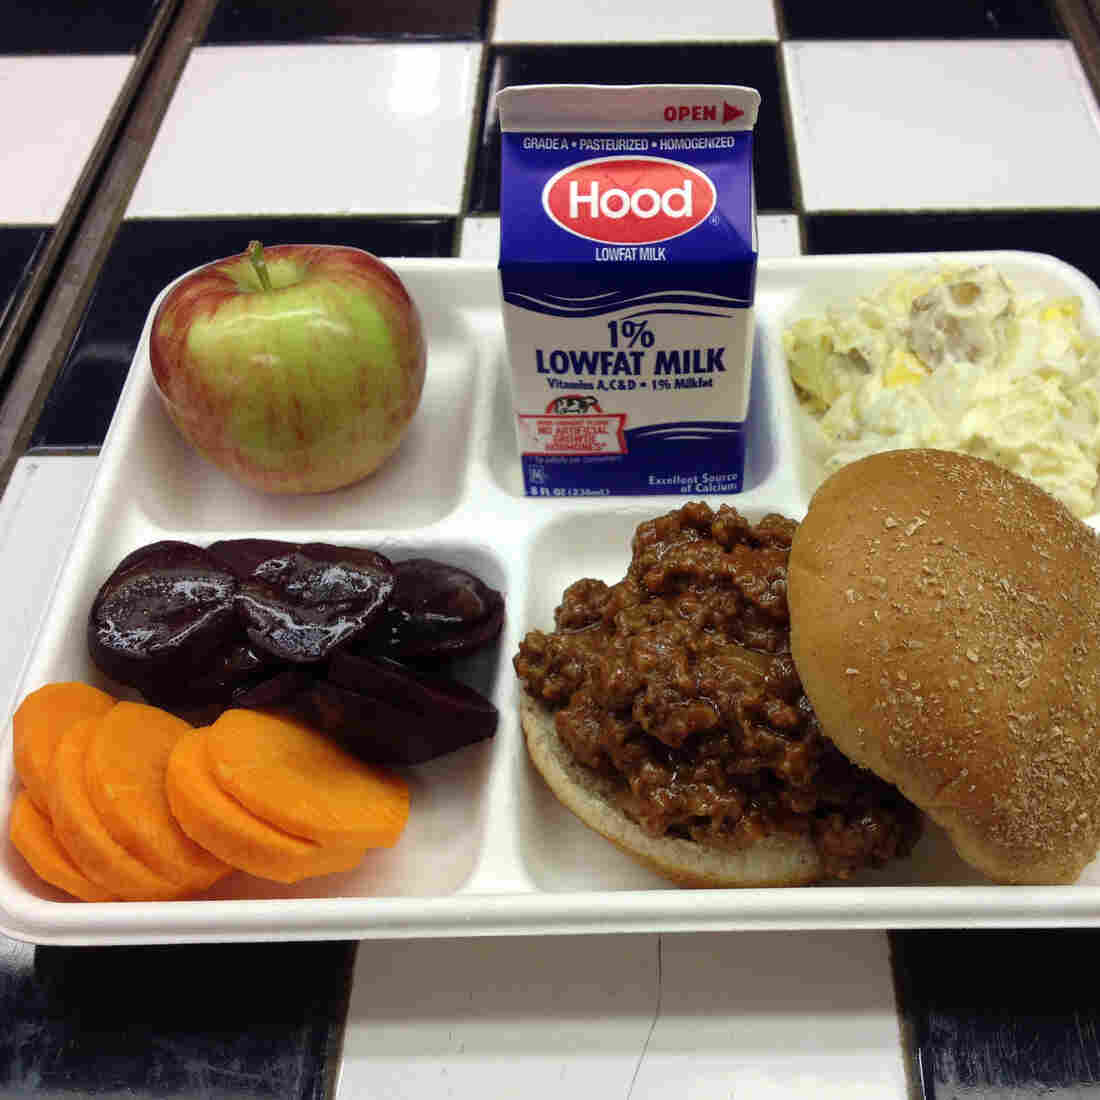 A lunch served by the Yarmouth, Maine, School Department on Sept. 26, 2014, featured Sloppy Joe's made with Maine beef and local beets, carrots, apples and potato salad. More than 80 percent of Maine schools said they served local foods in a survey conducted by the USDA.